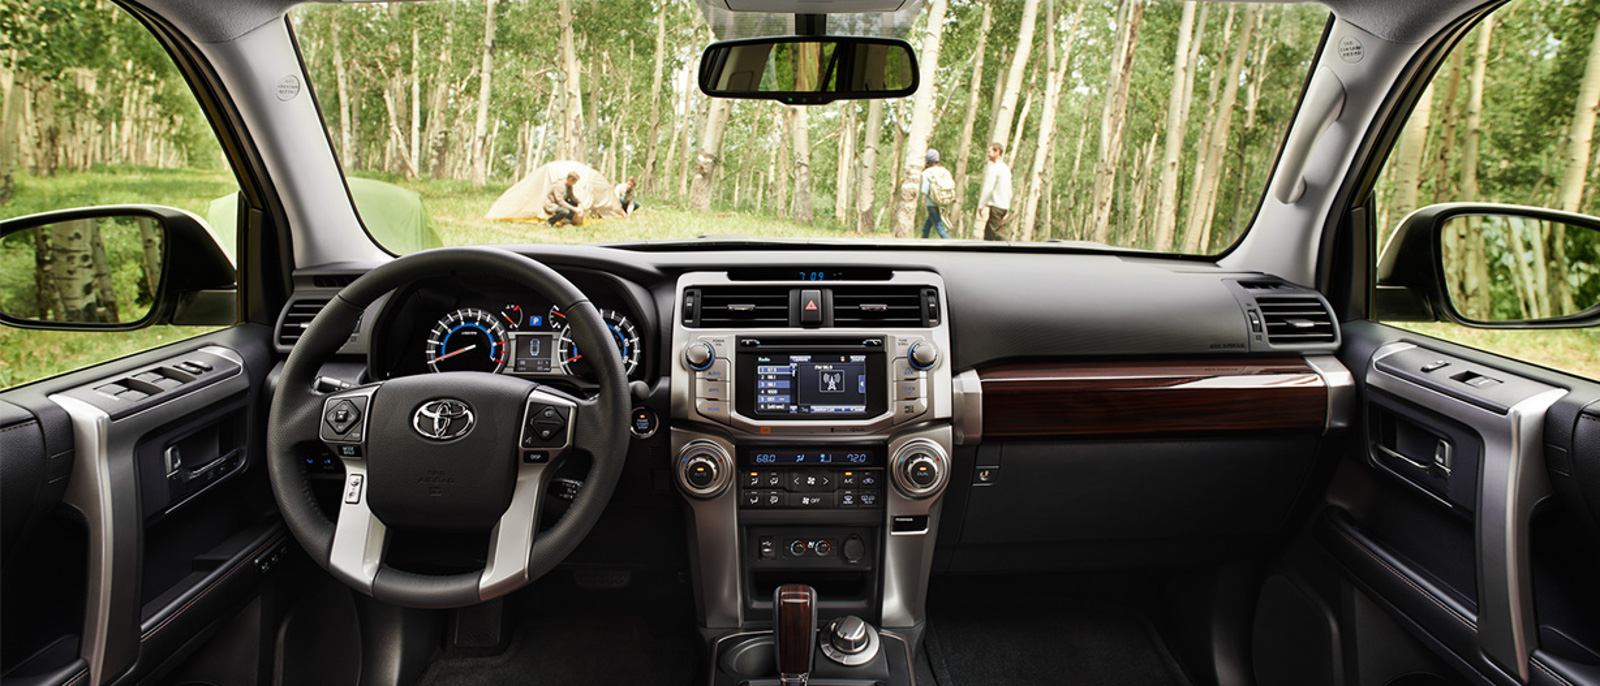 2015 Toyota 4Runner Interior Dash